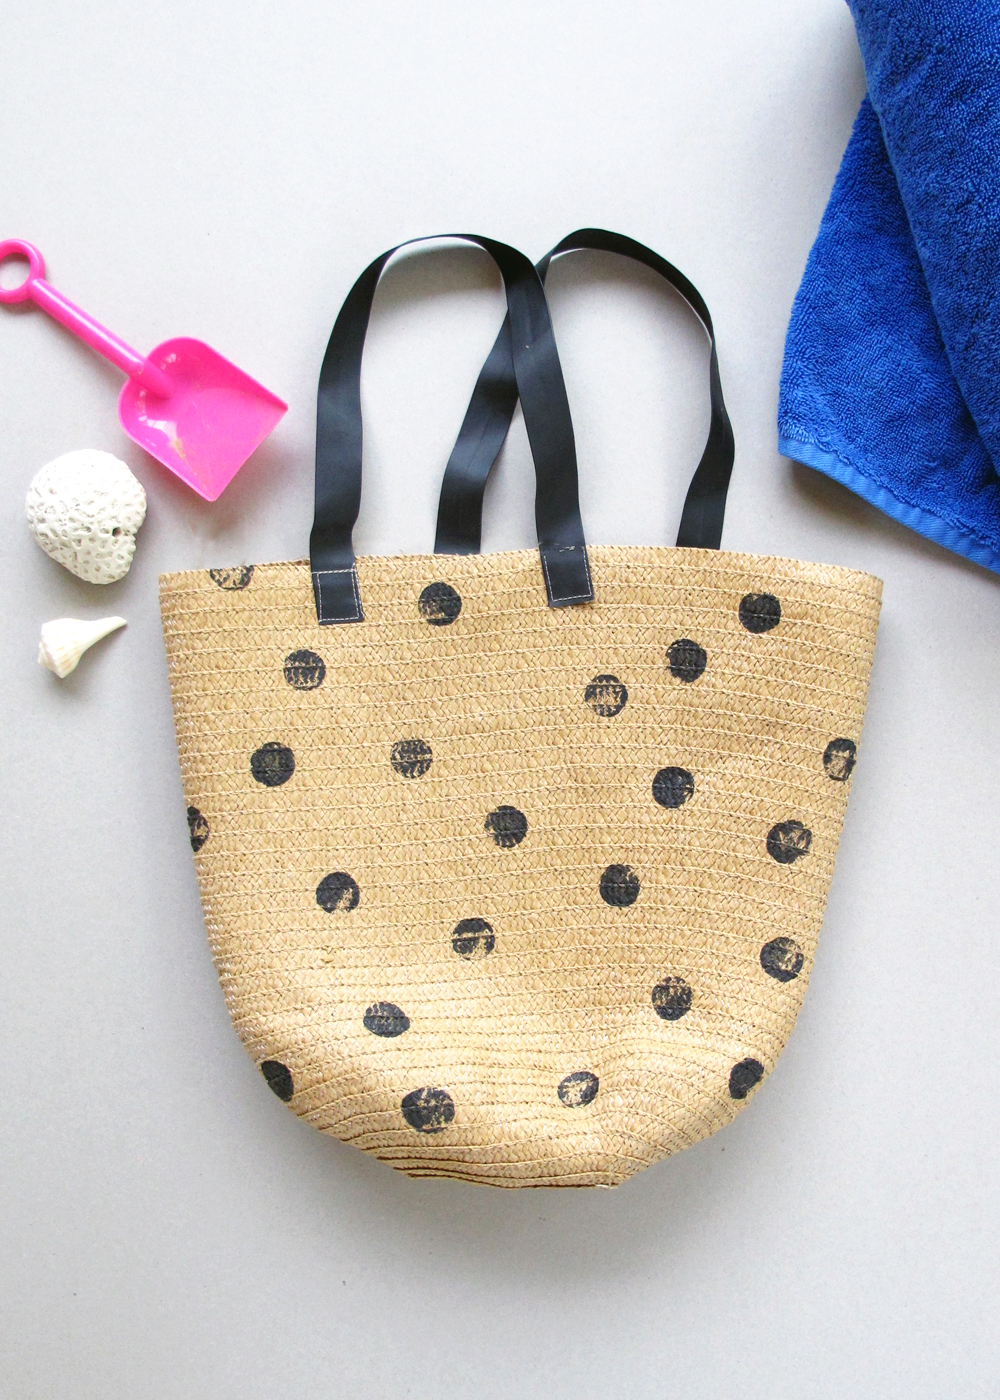 polka-dot beach bag DIY!